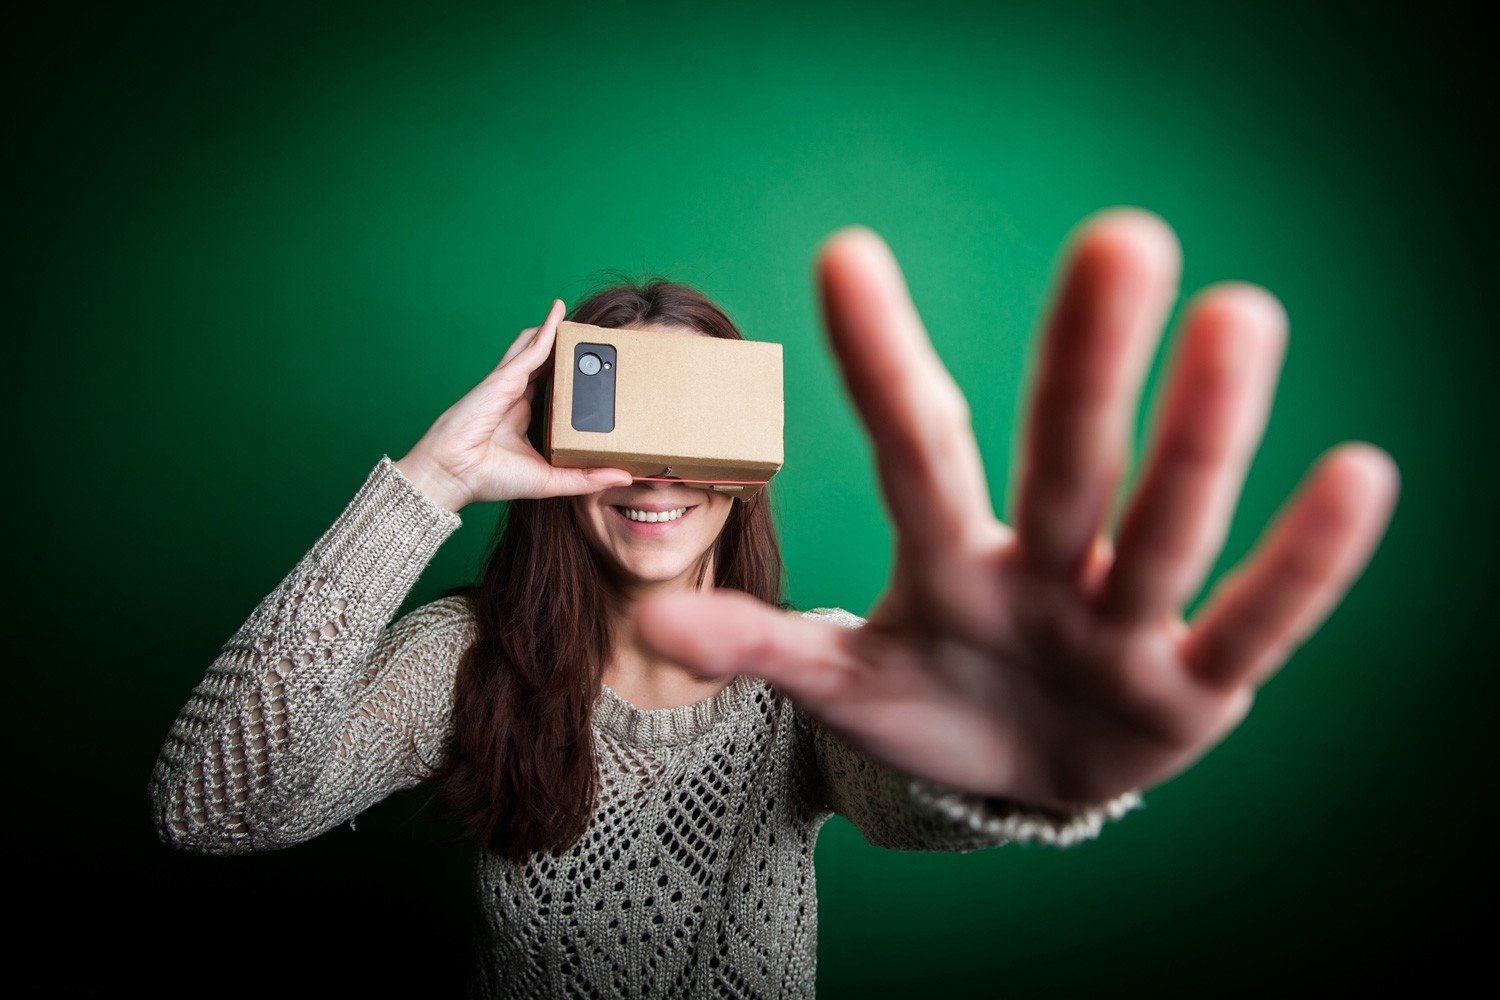 Google cardboard wearable virtual reality